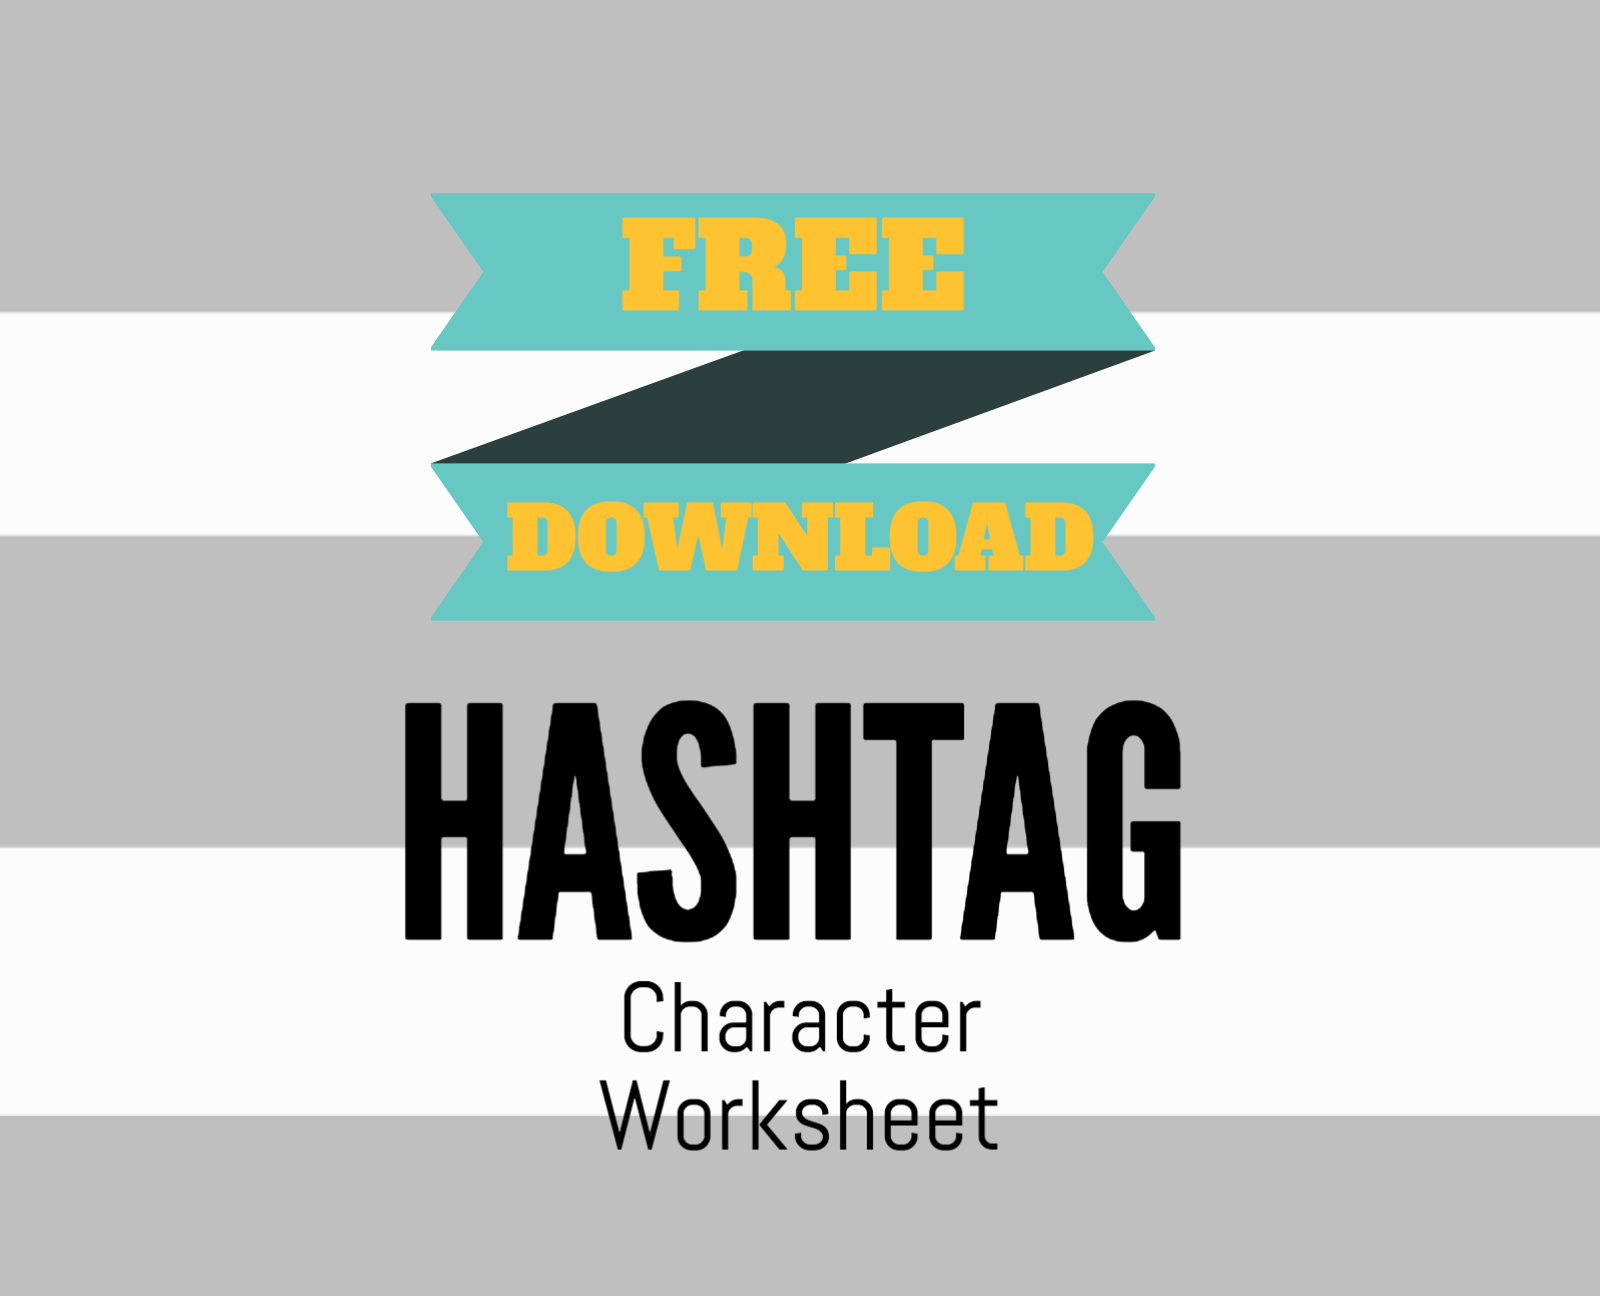 Free Hashtag Character Development Worksheet